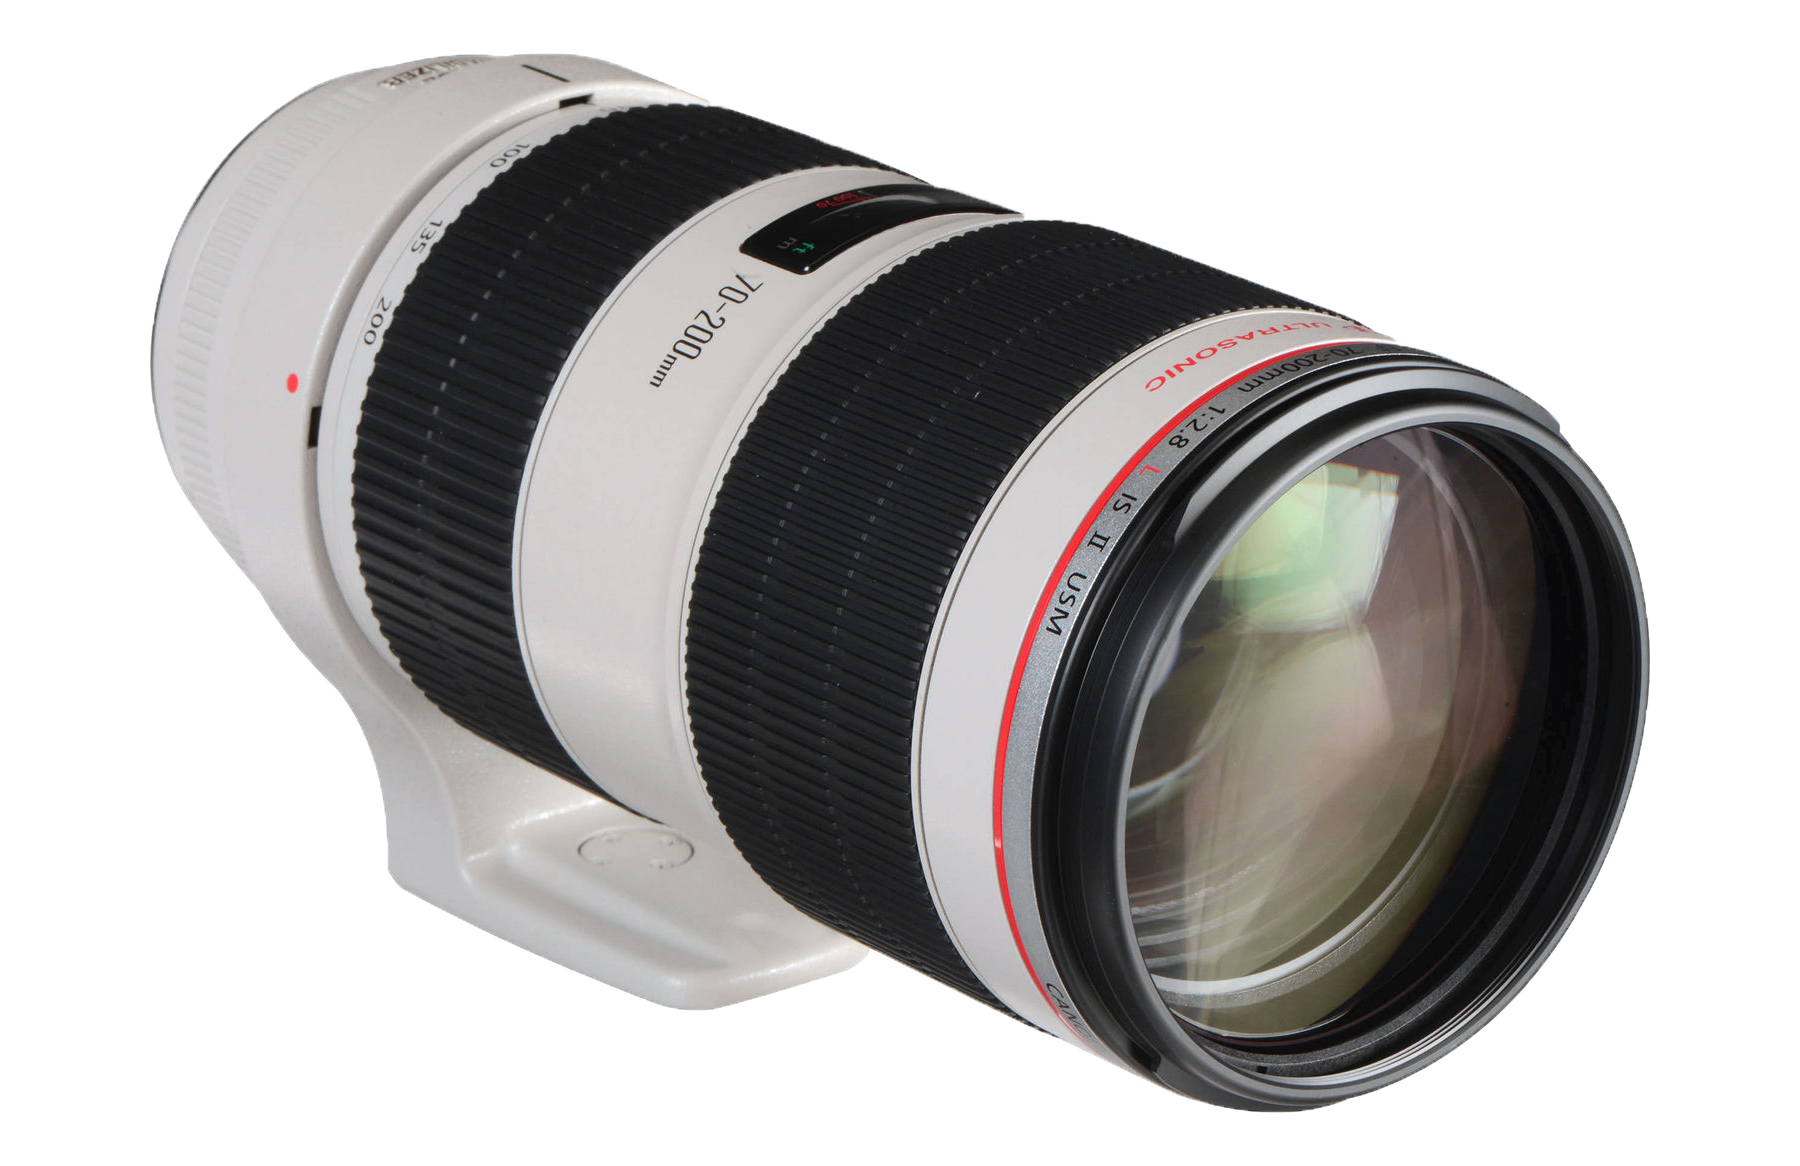 Nouvelle Acquisition: Zoom Canon 70-200mm T2.8 en Monture EF